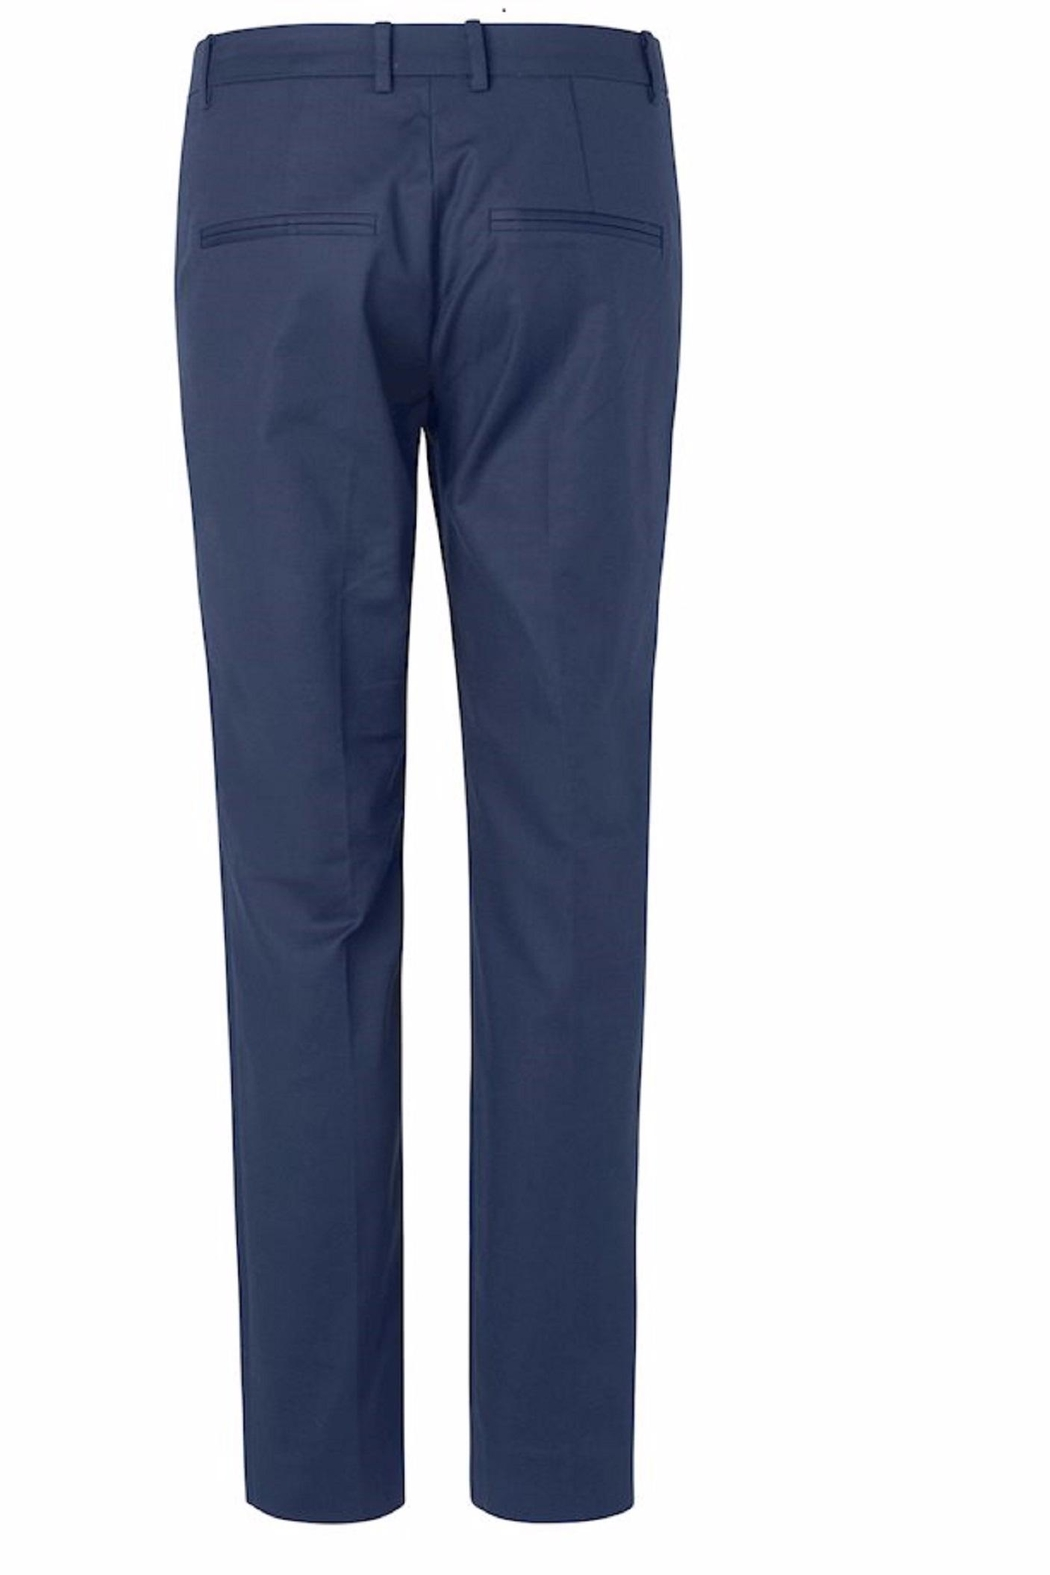 Noa Noa Beautiful Basic Trousers - Front Full Image